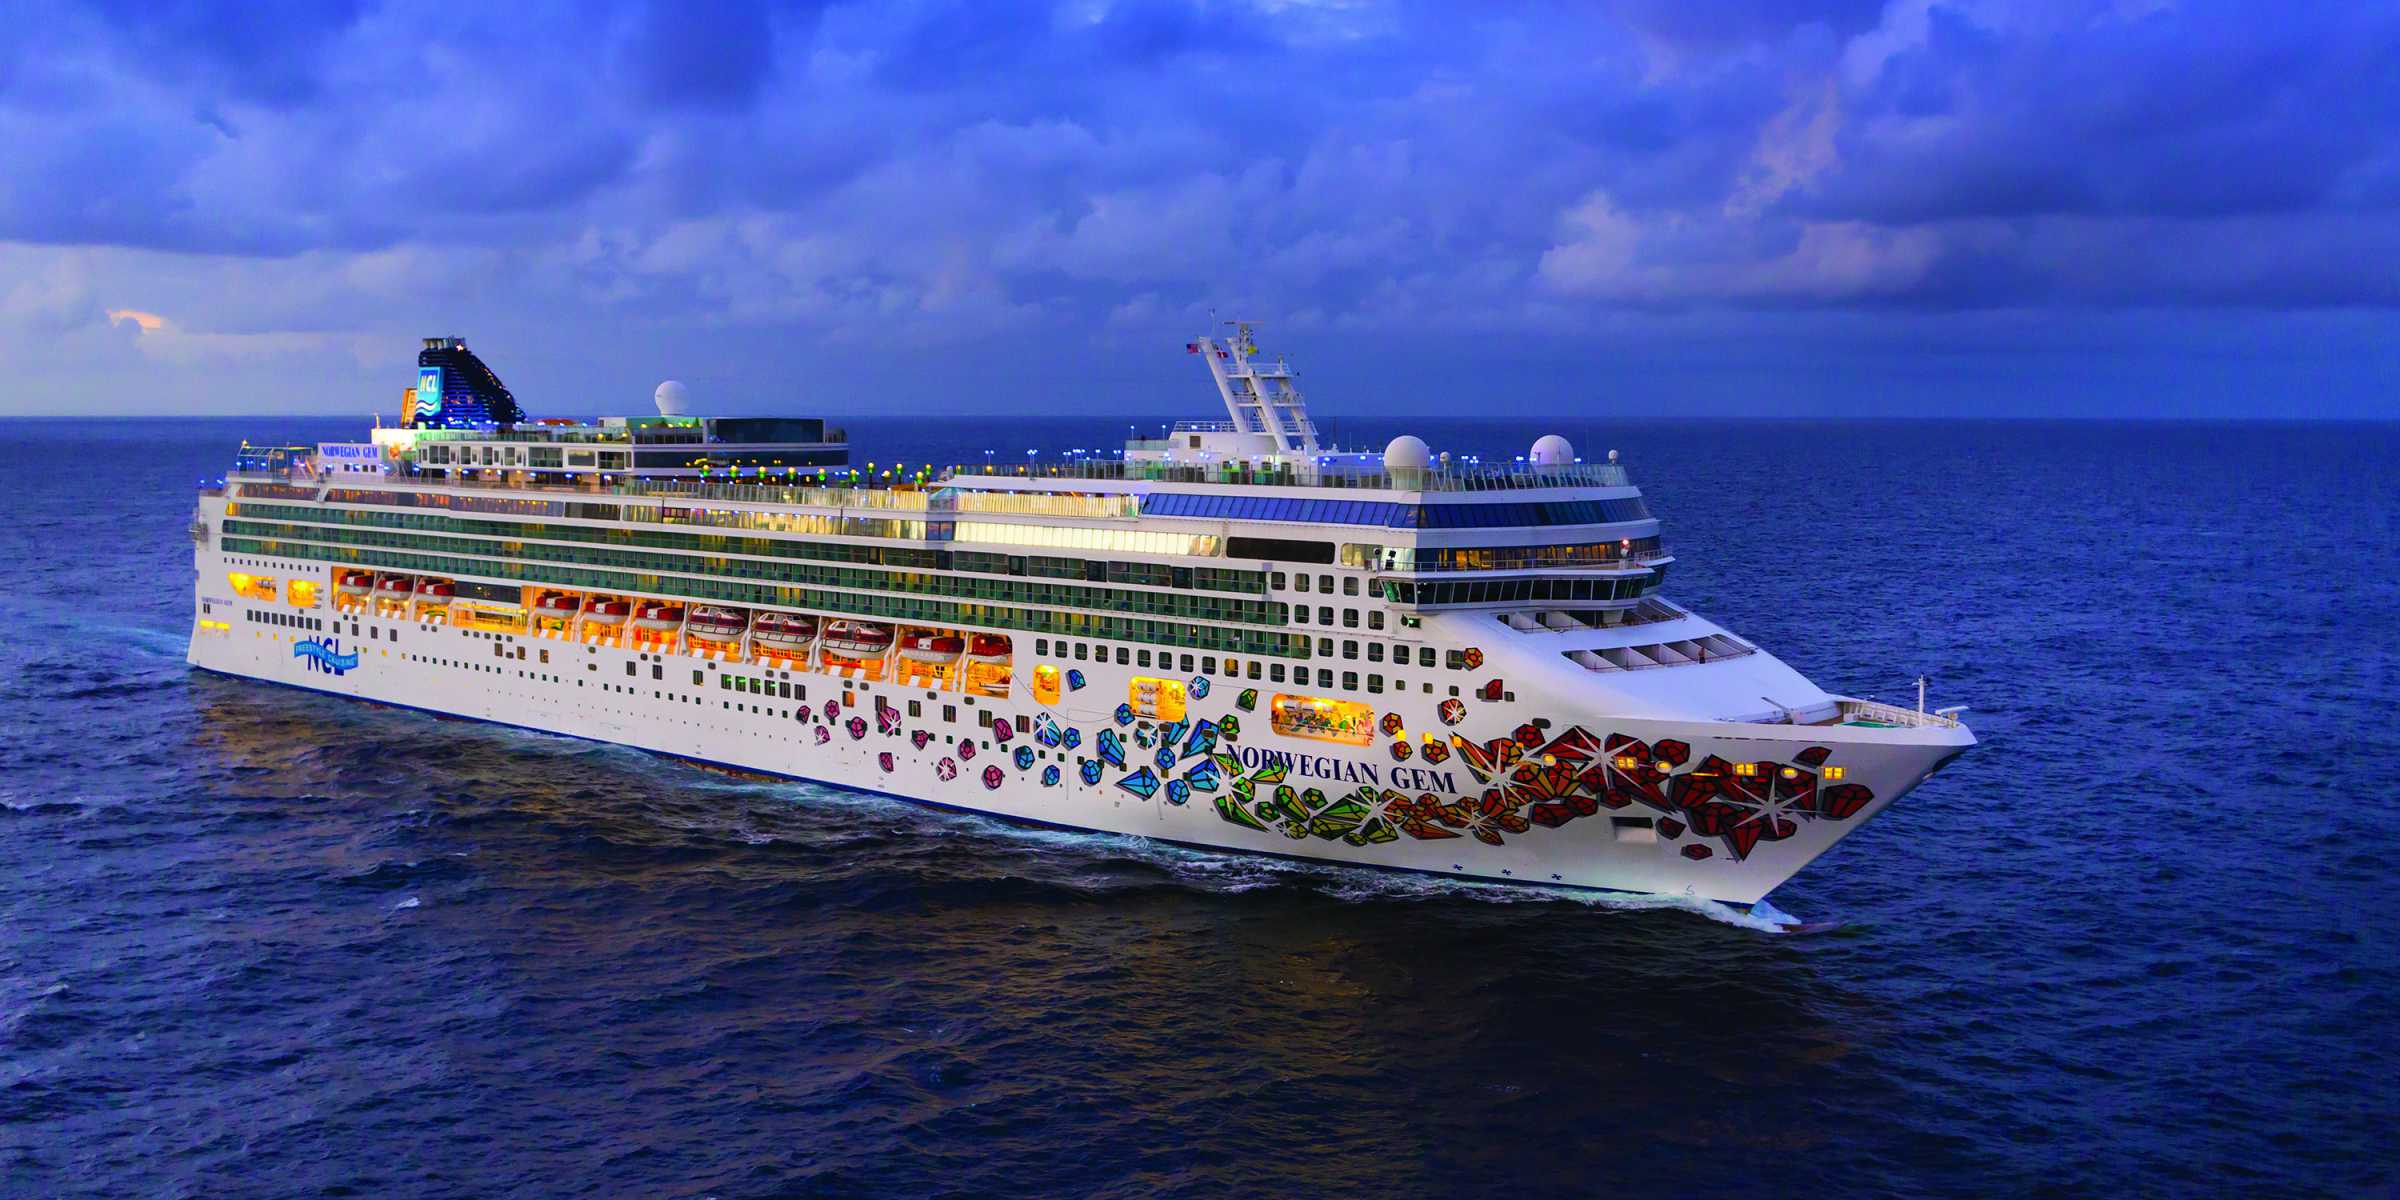 Norwegian Jewel La Cucina Menu Norwegian Cruises Cruise Deals On Norwegian Gem